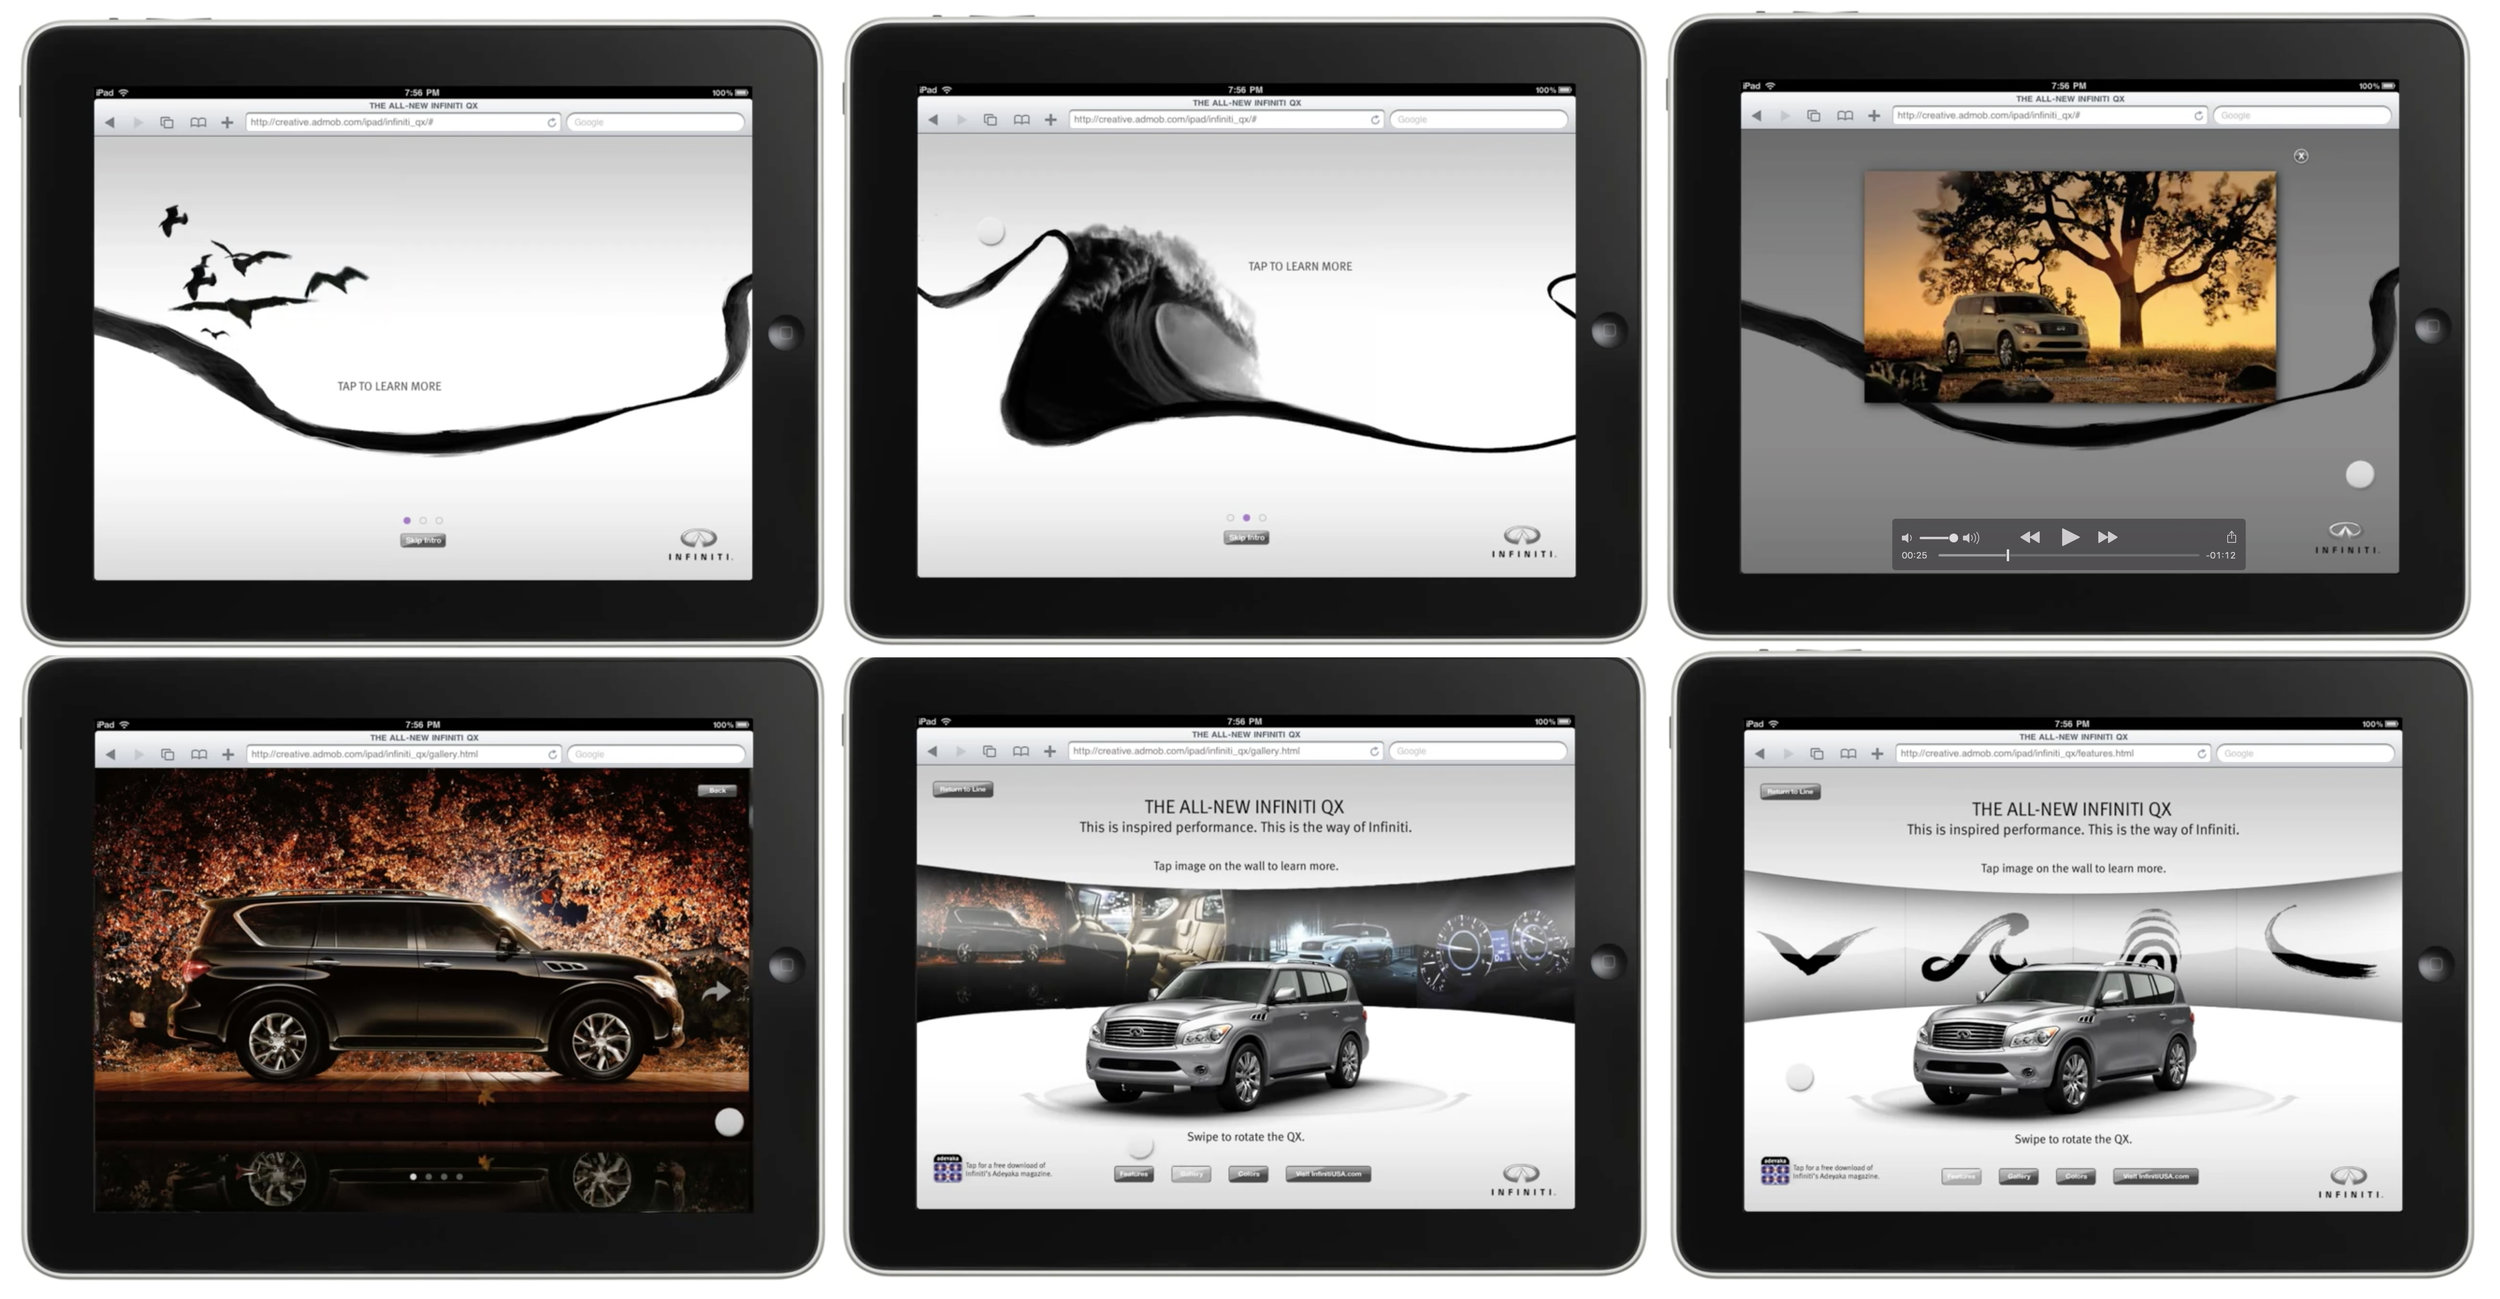 IPad QX Screens.jpg